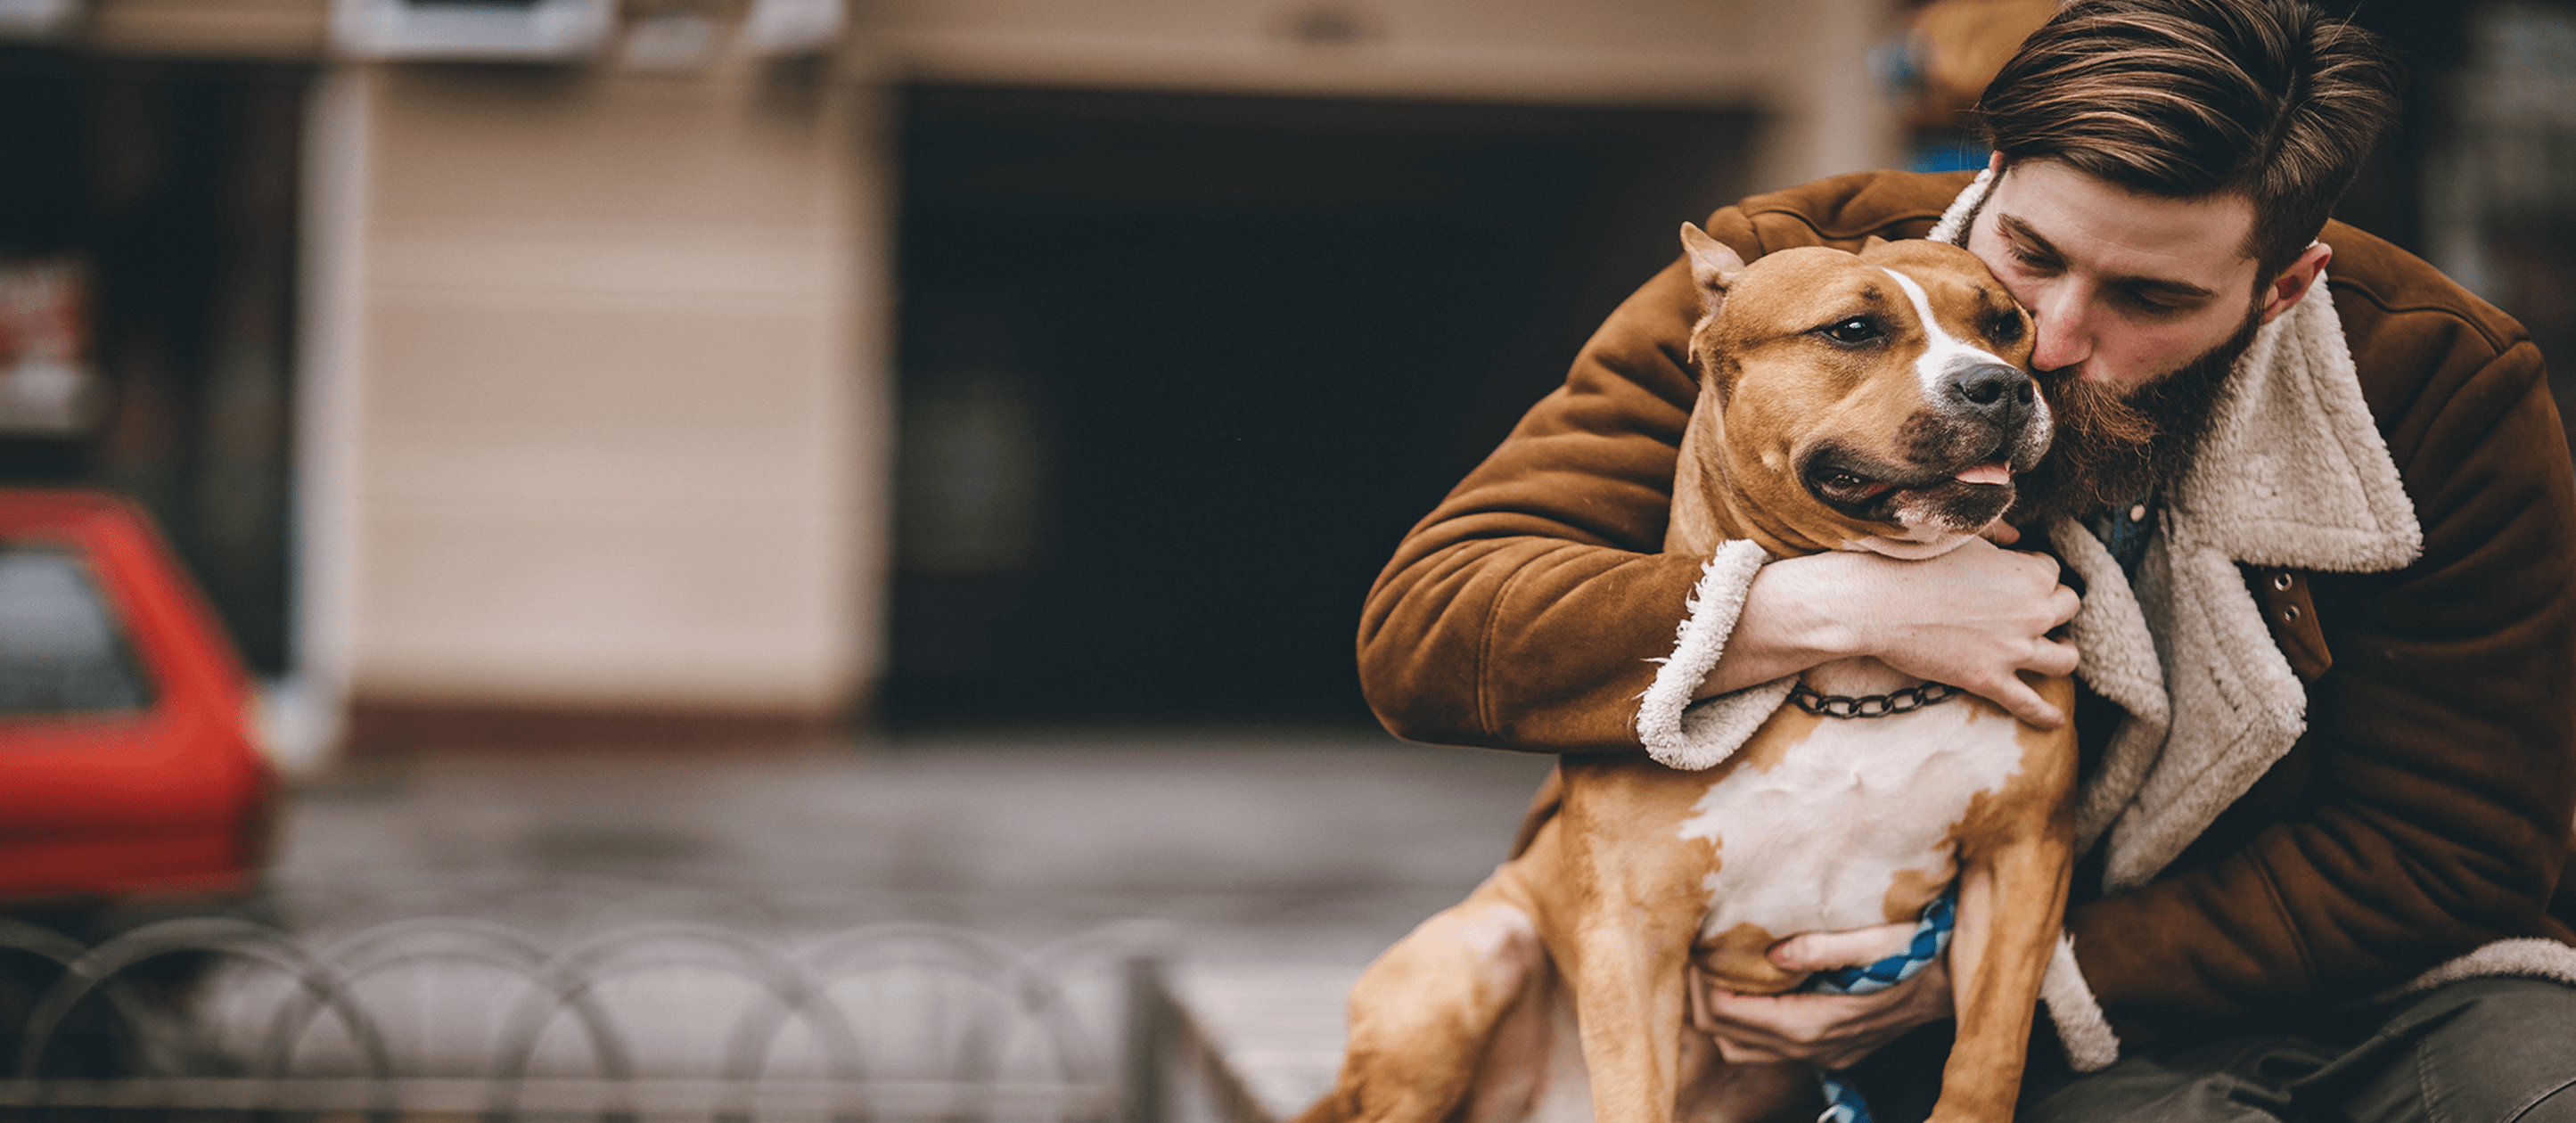 Image of man hugging his dog